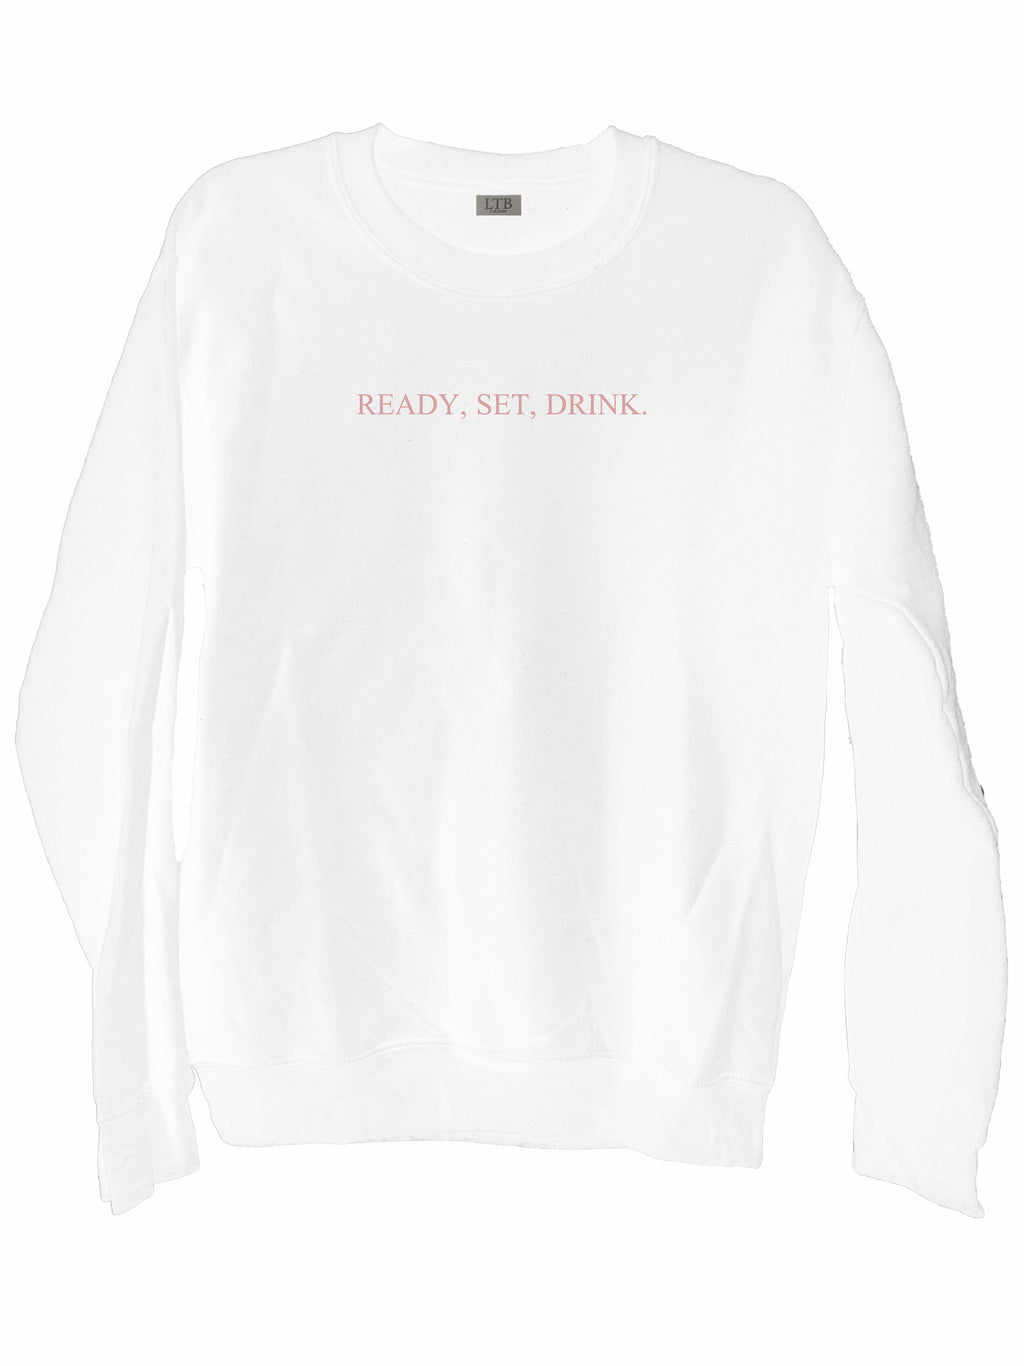 [LTB Customs] Ready Set Drink Crewneck Sweatshirt